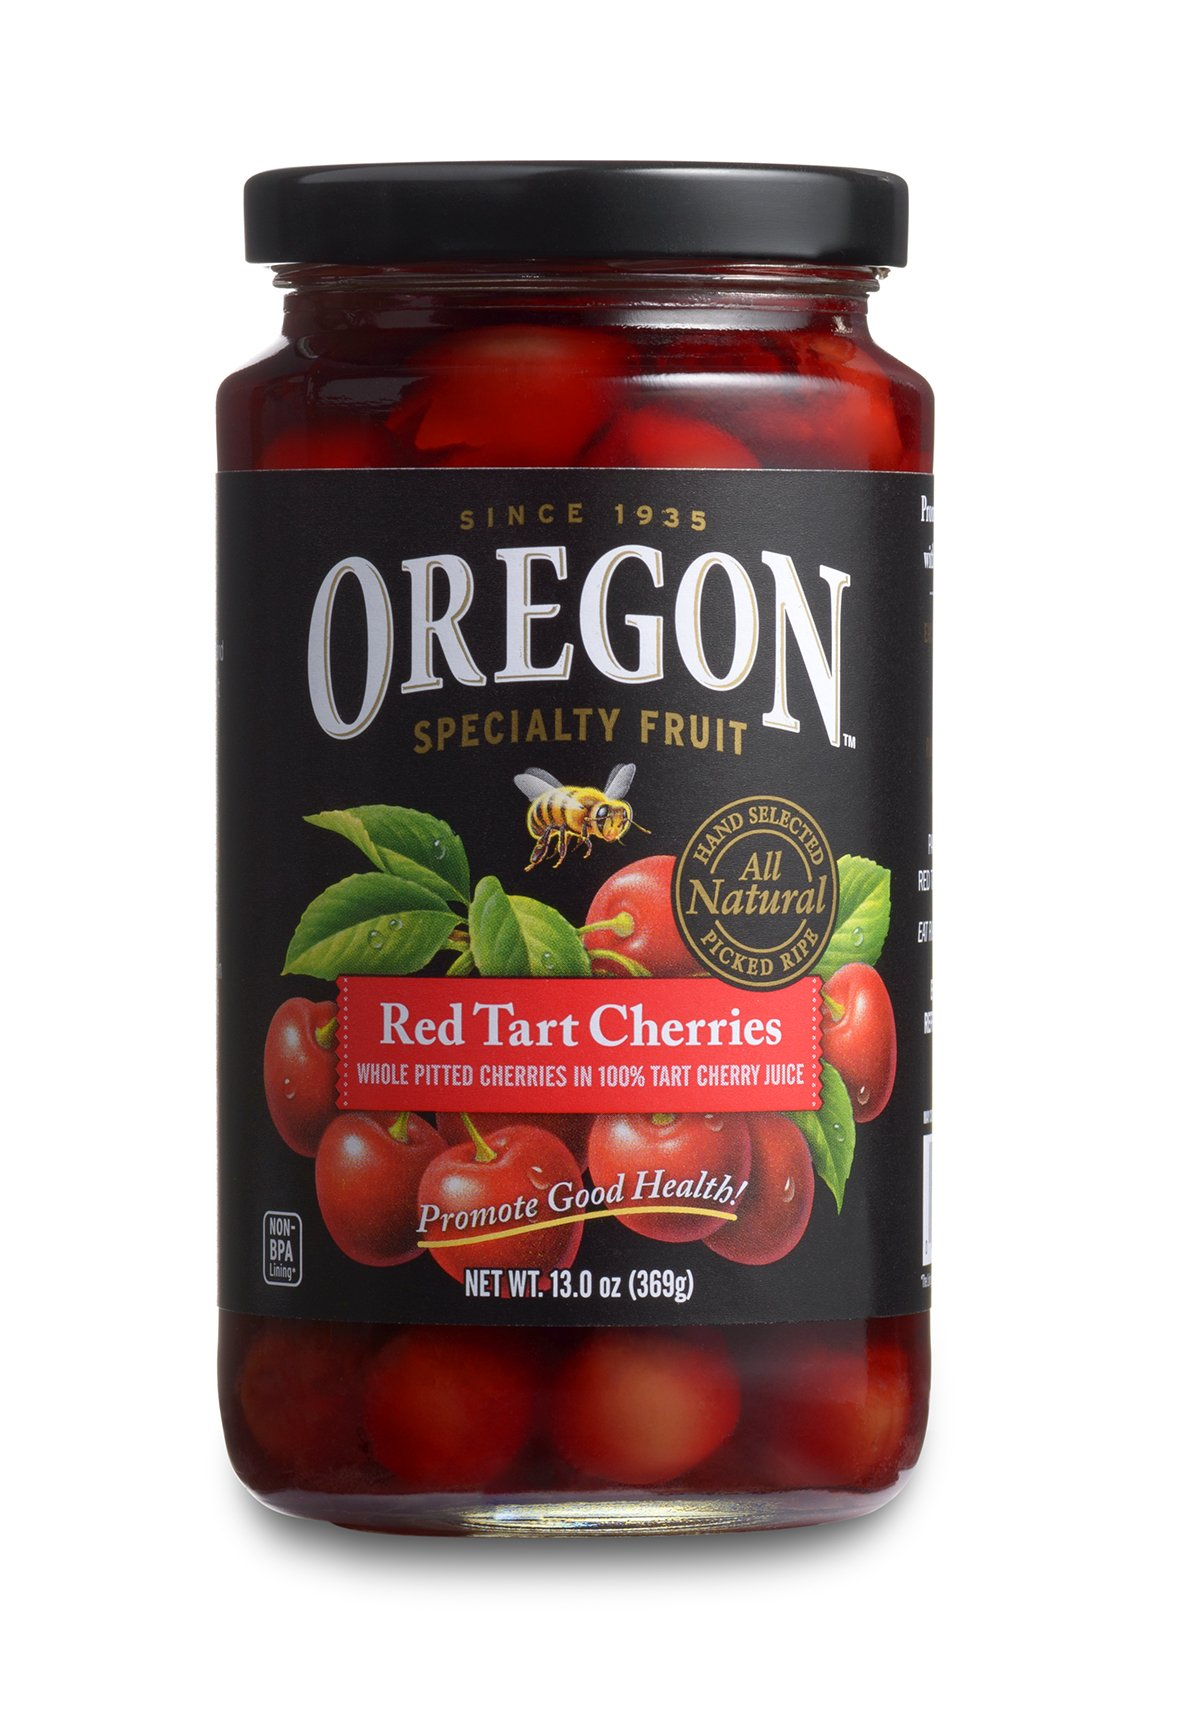 Oregon Fruit Products Red Tart Cherries in Cherry Juice - 13-ounce jar, (Pack of 4)